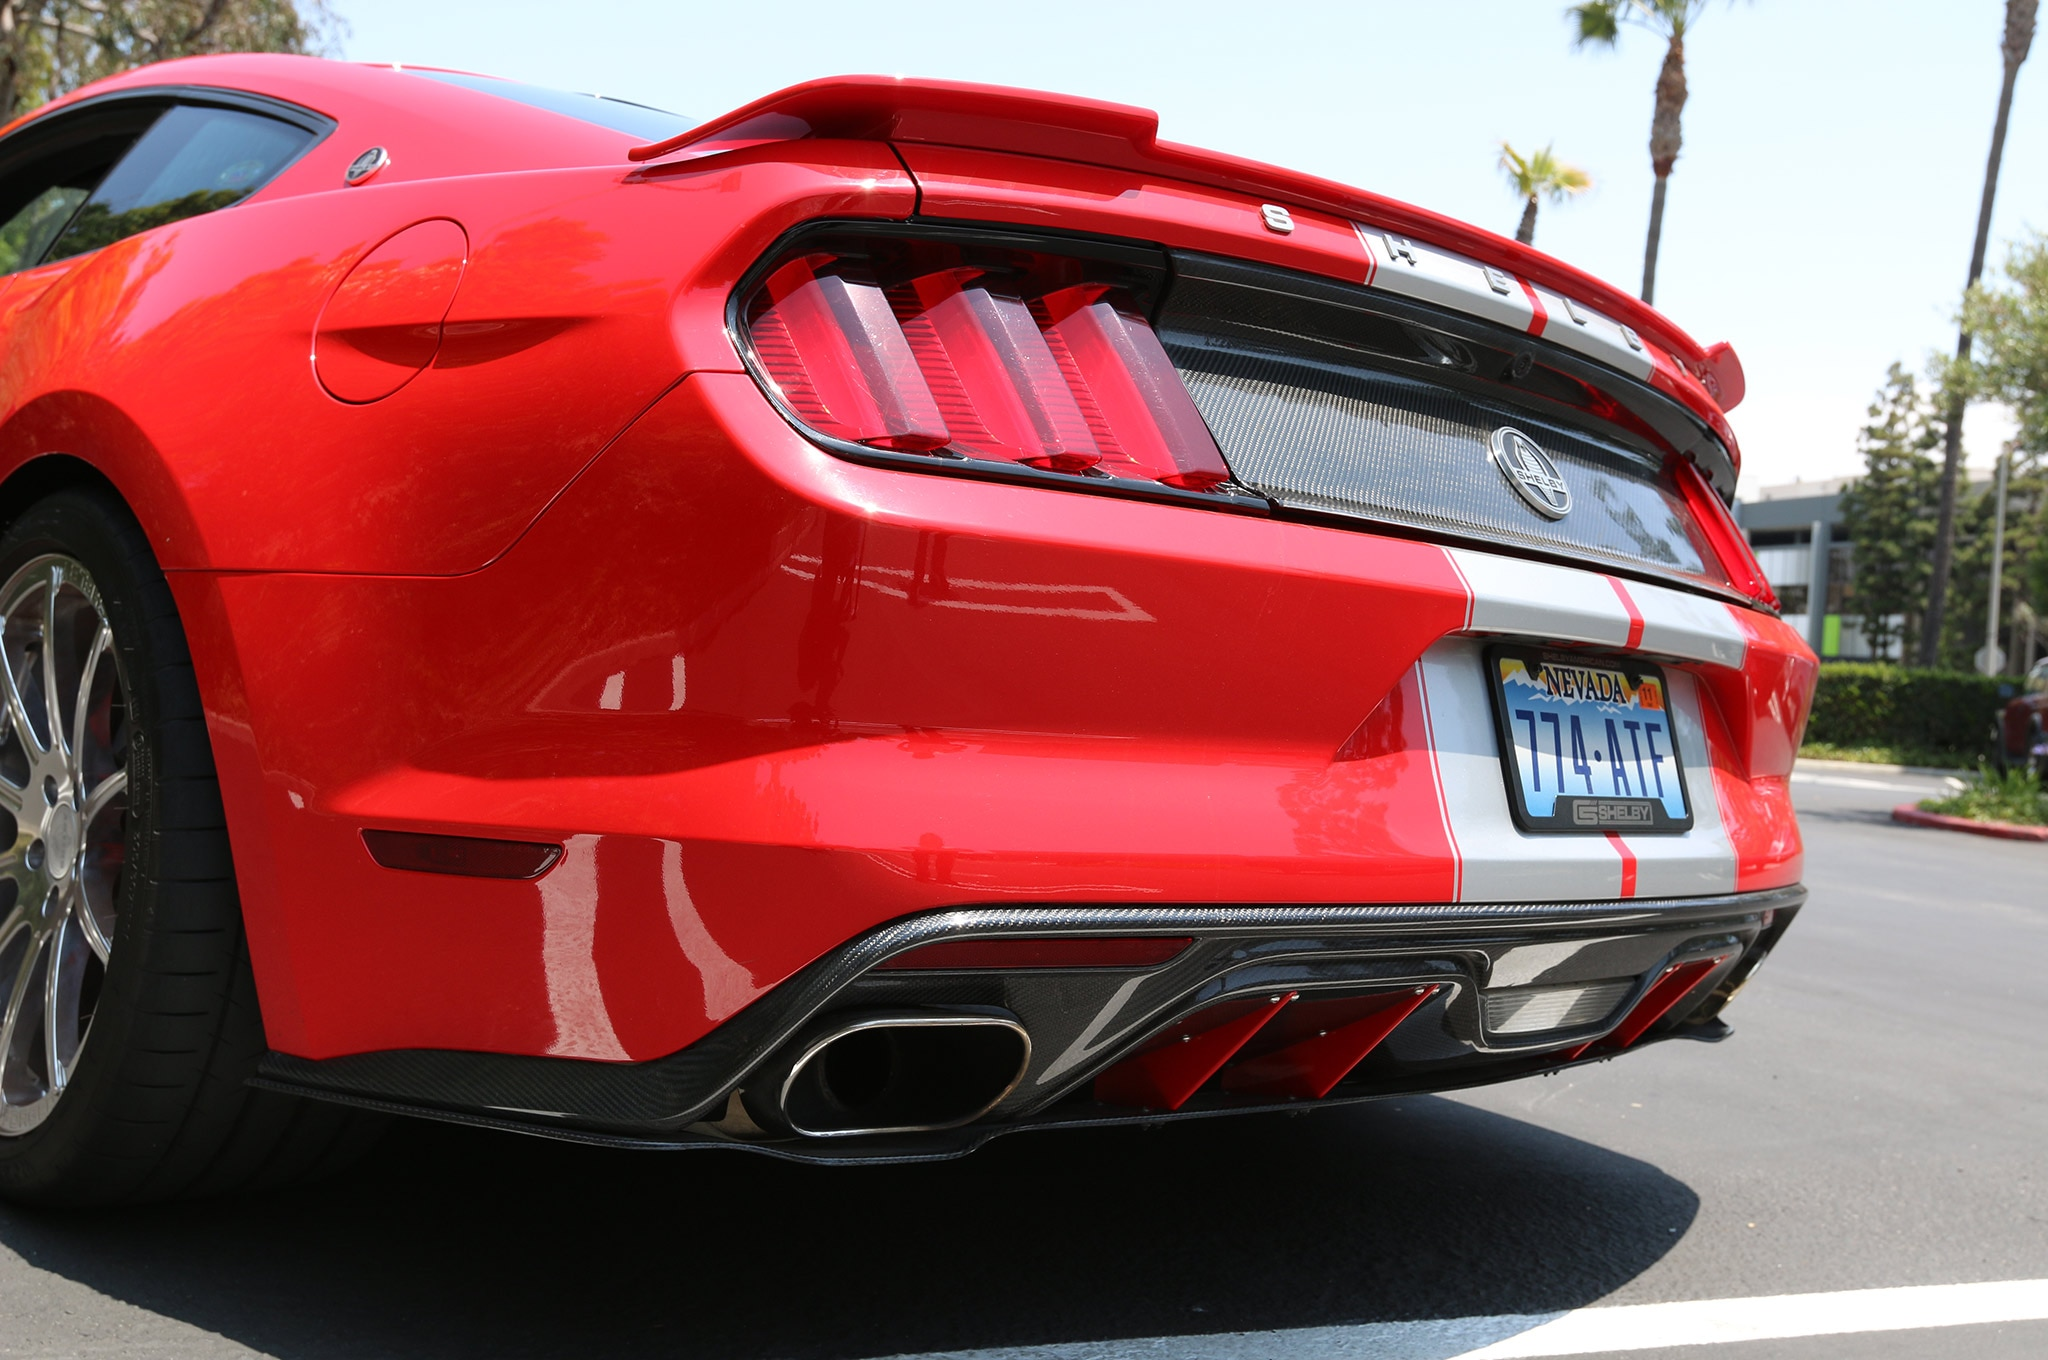 2015 Shelby GT Mustang 26 Borla Exhaust